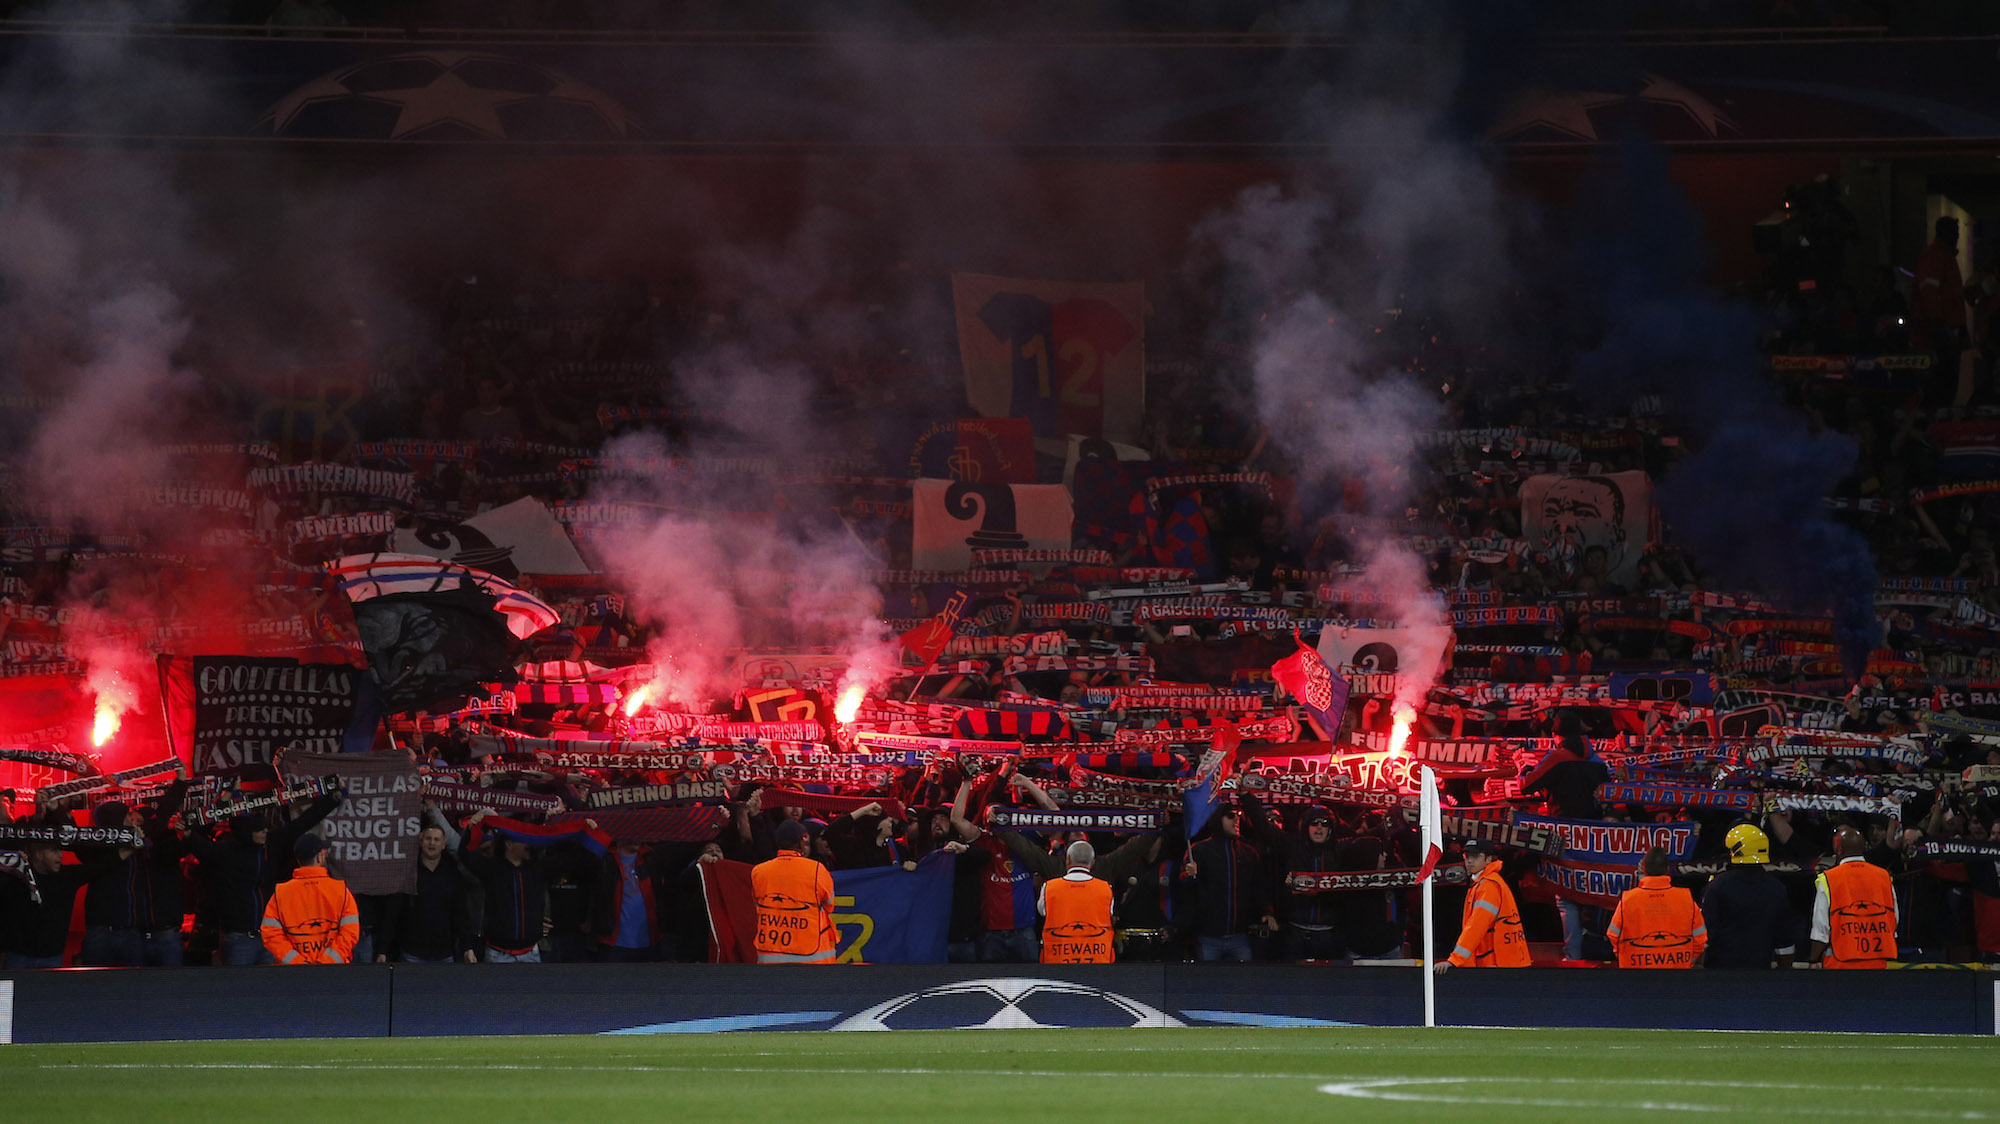 Britain Soccer Football - Arsenal v FC Basel - UEFA Champions League Group Stage - Group A - Emirates Stadium, London, England - 28/9/16 FC Basel fans with flares Action Images via Reuters / Andrew Couldridge Livepic EDITORIAL USE ONLY.